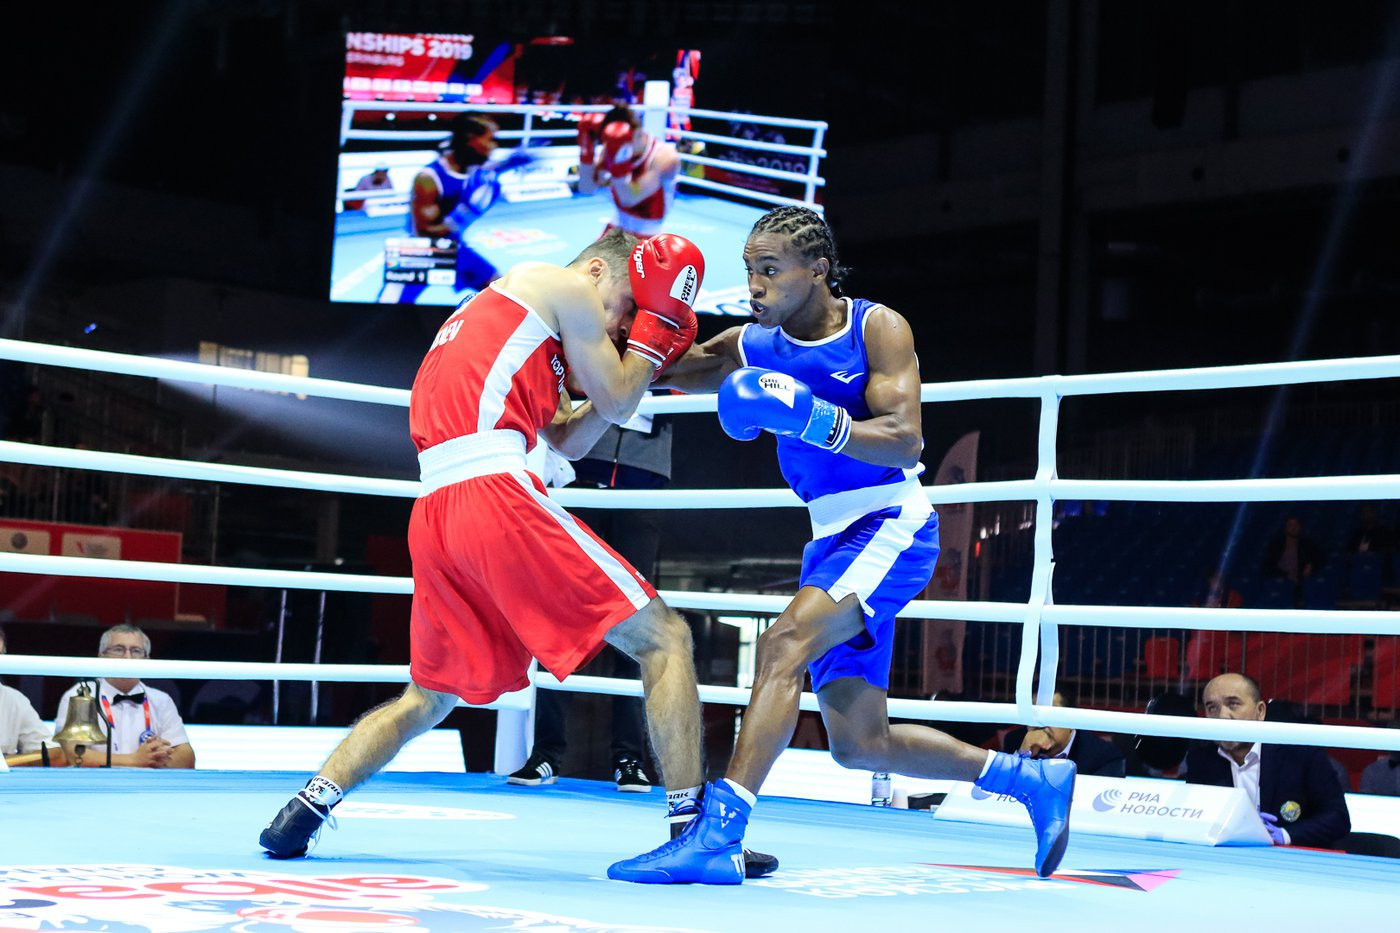 The Finnish boxer was the victor, narrowly triumphing 3-2 ©Yekaterinburg 2019